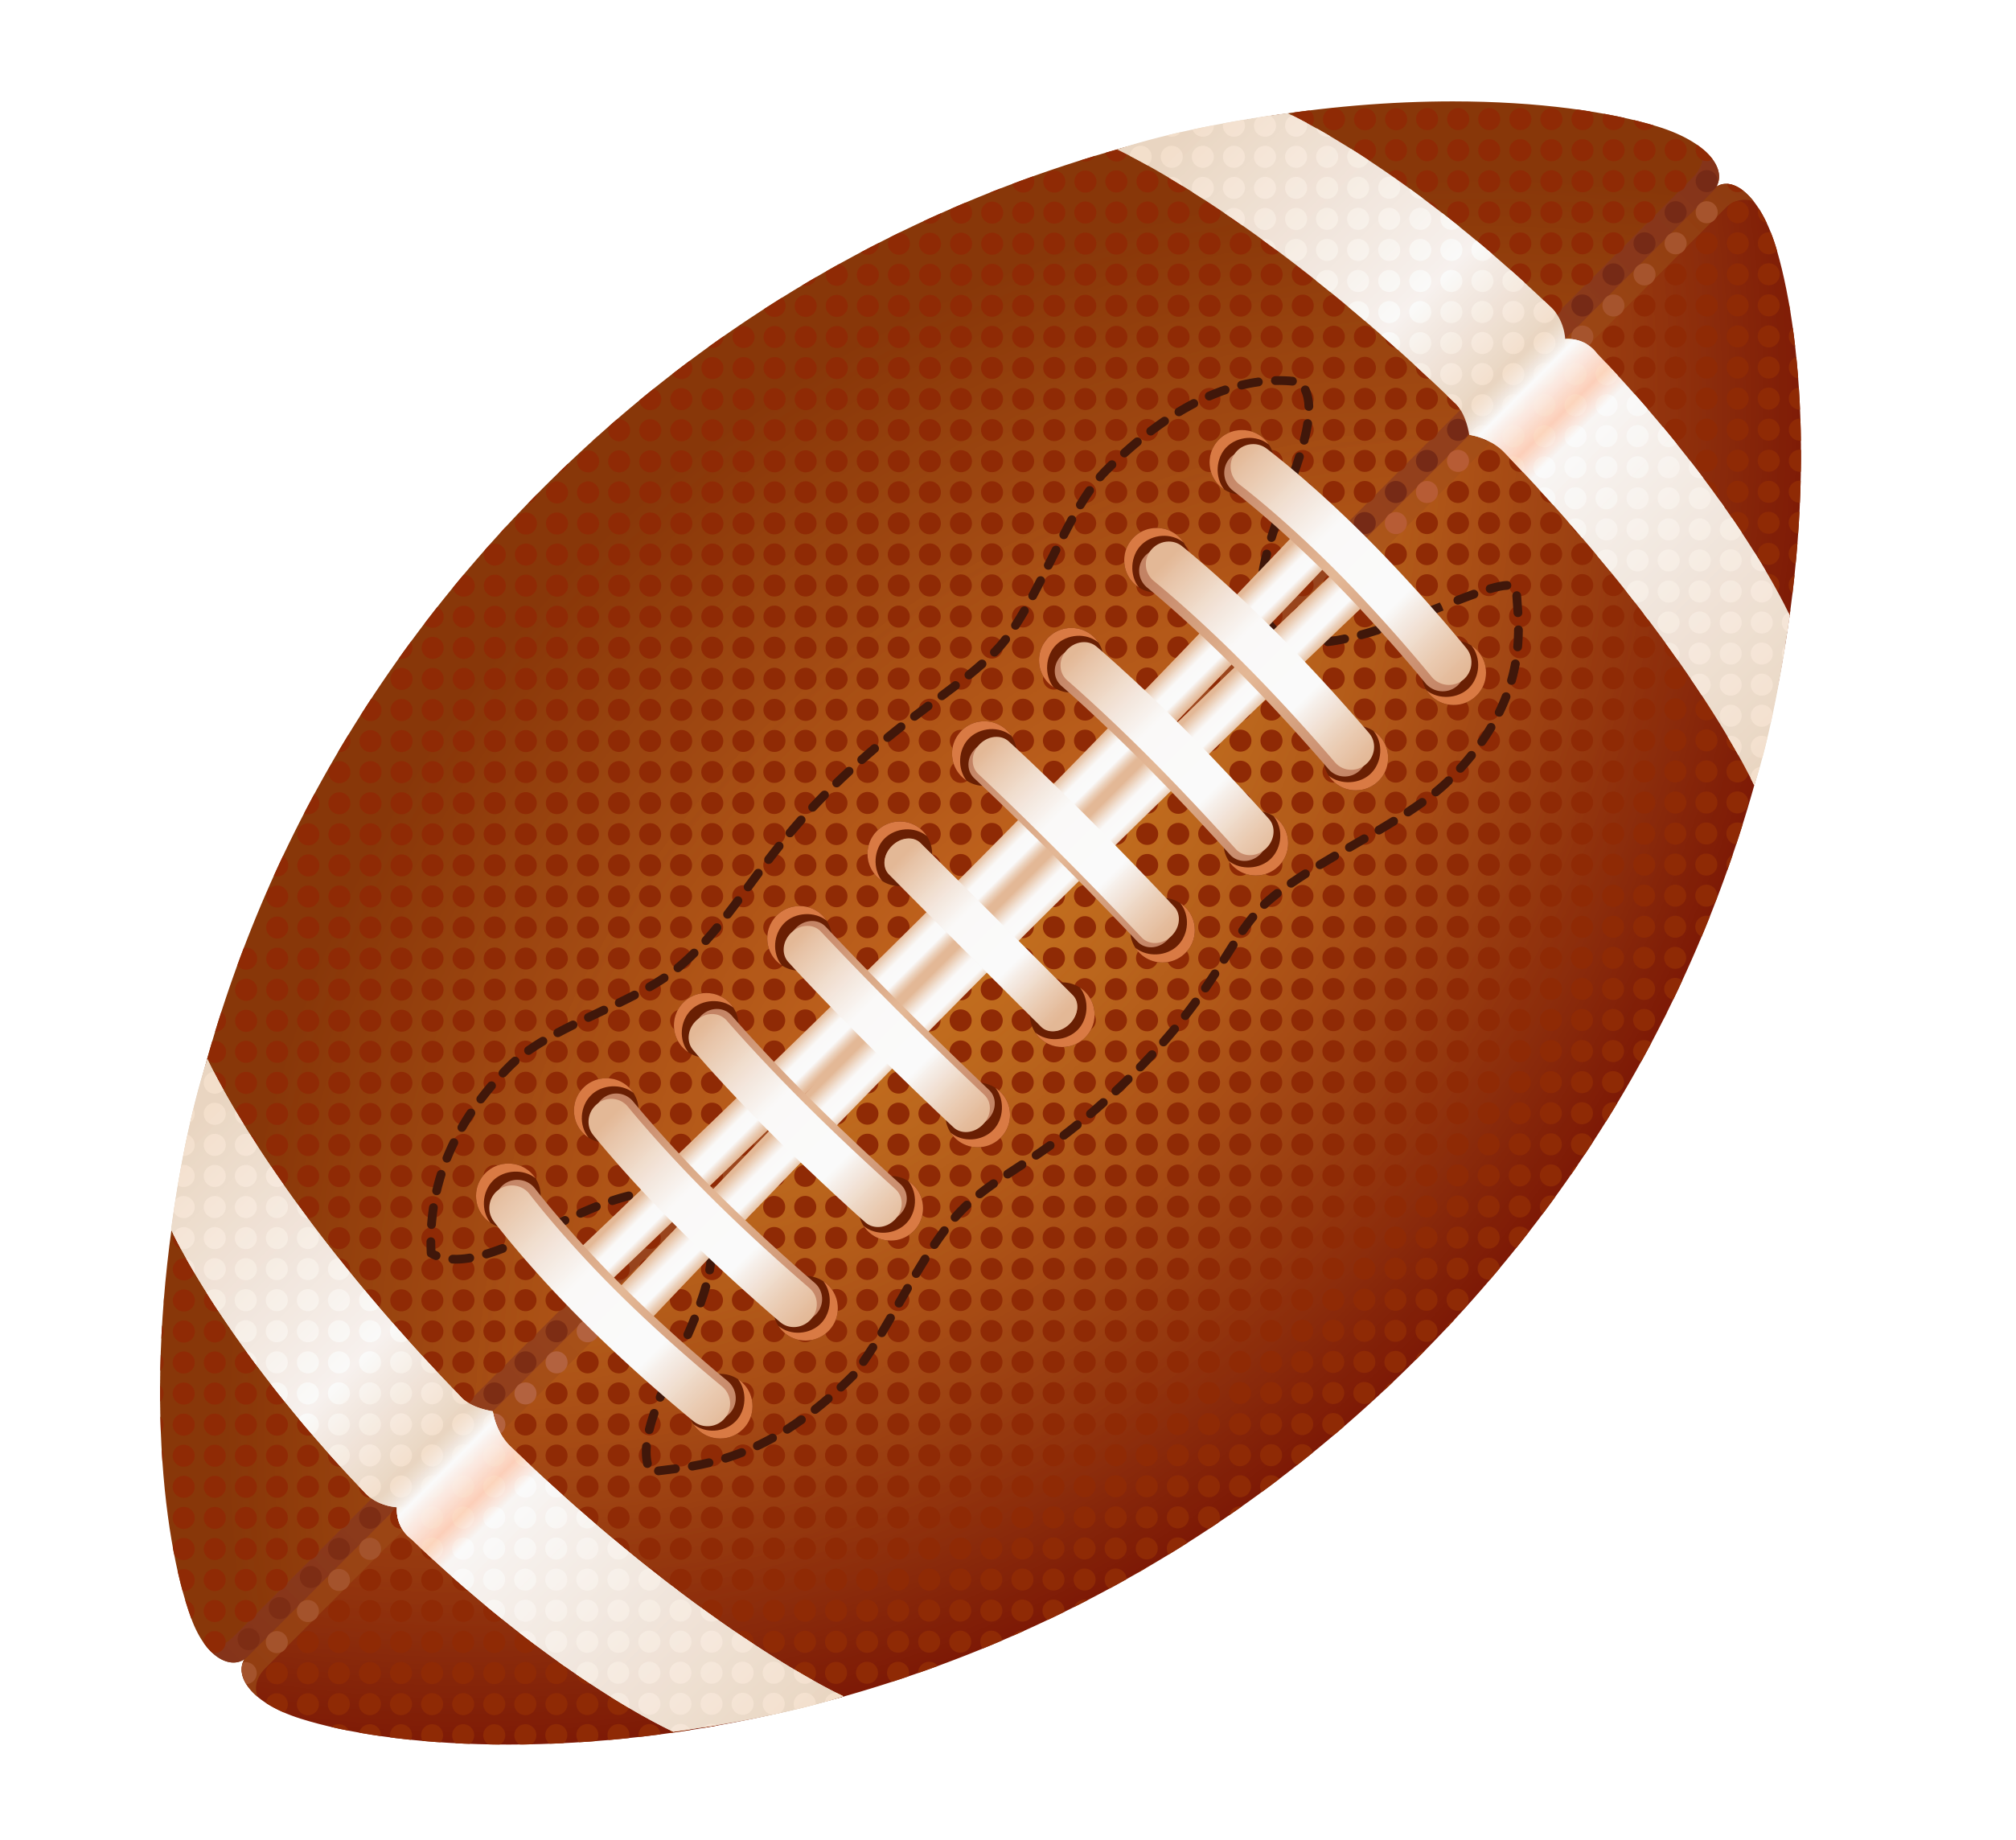 American football clipart .